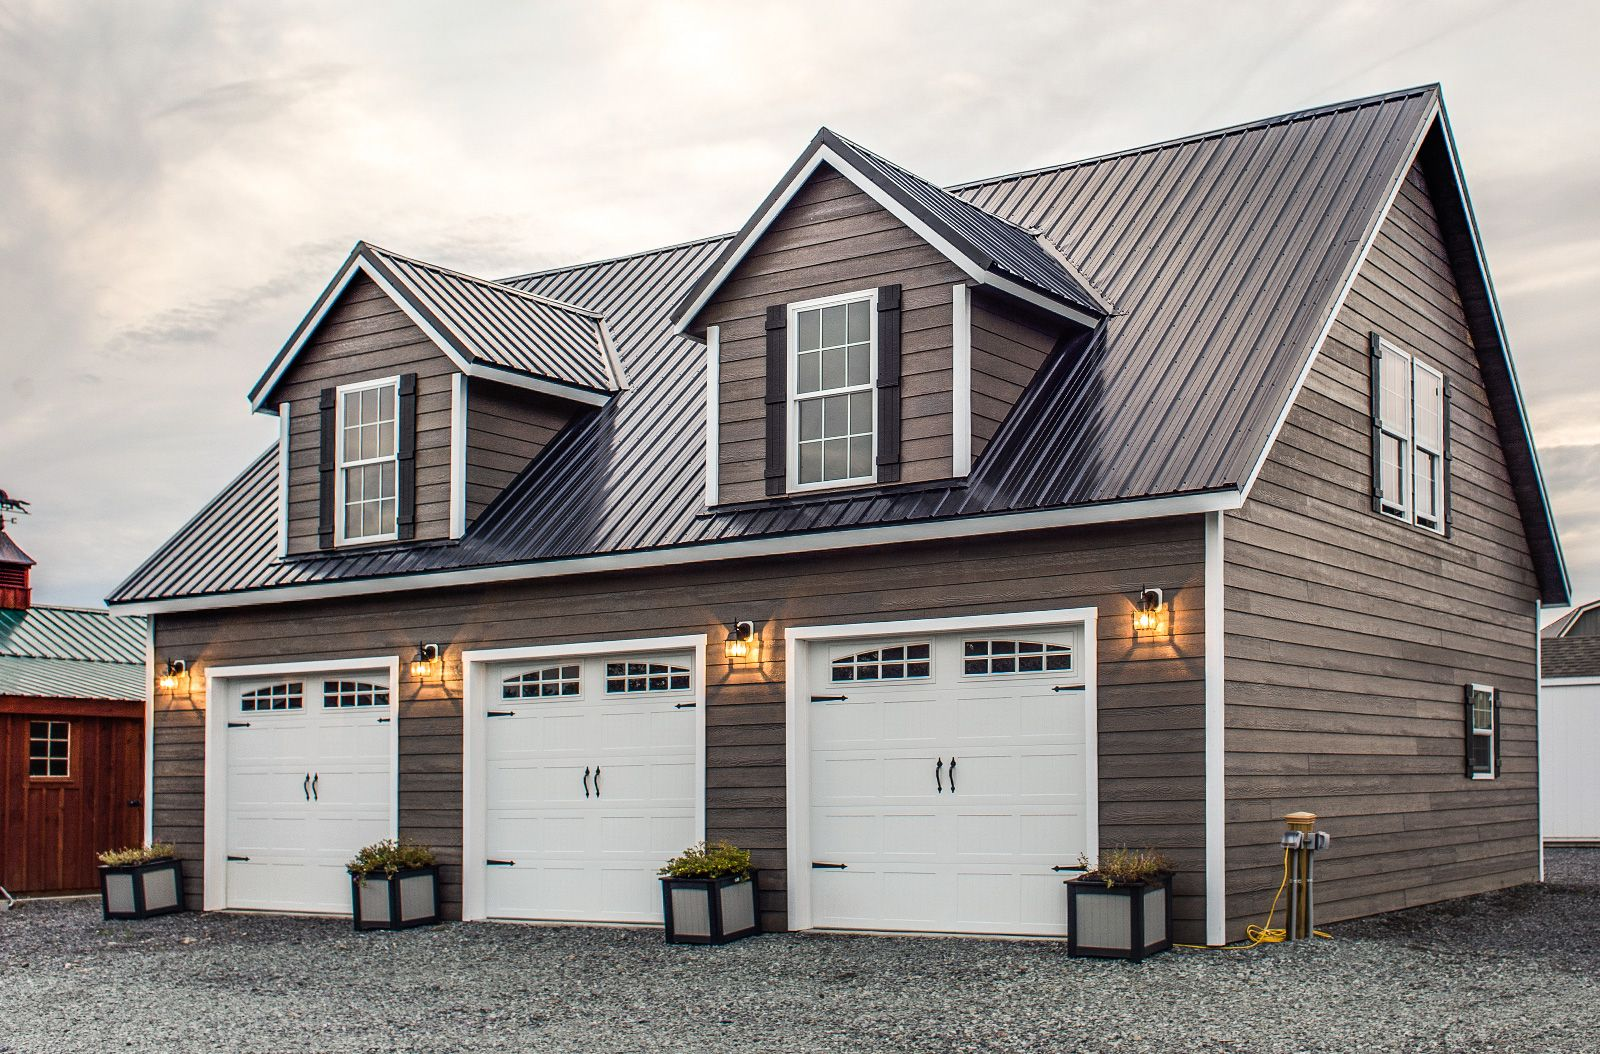 Two Story Deluxe - Prefab And Modular Garage | Prefab